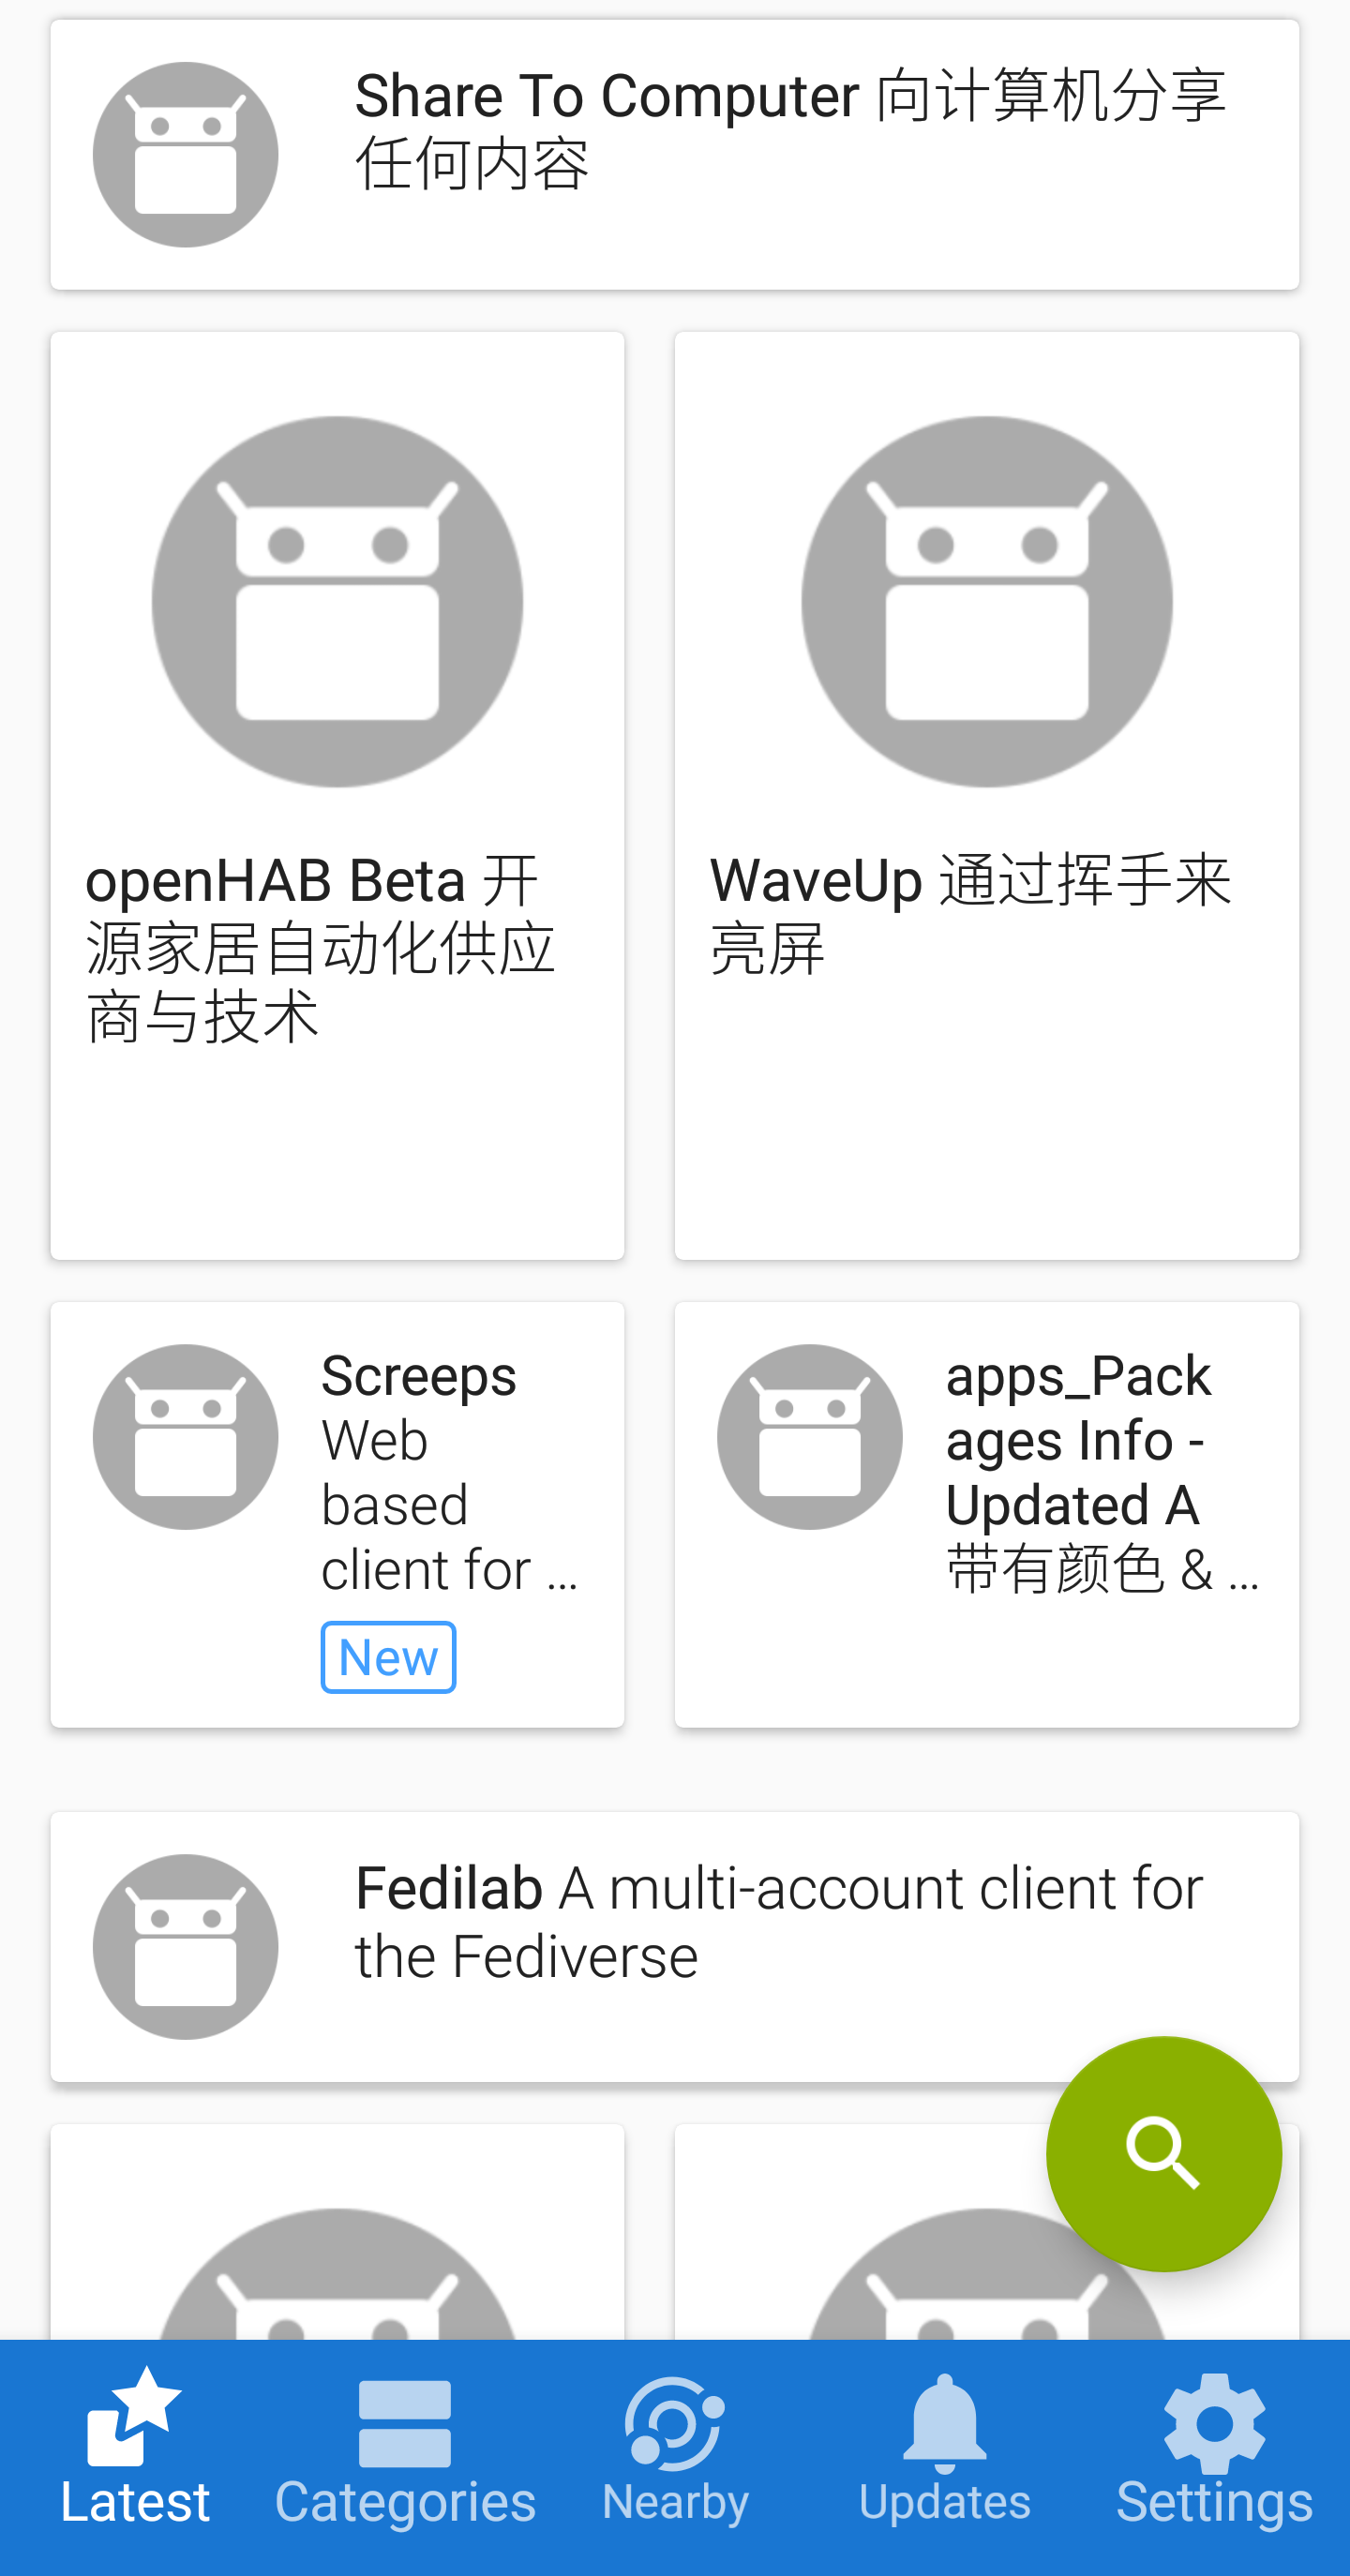 New FDroid Install - Full of Chinese text - Primary language English